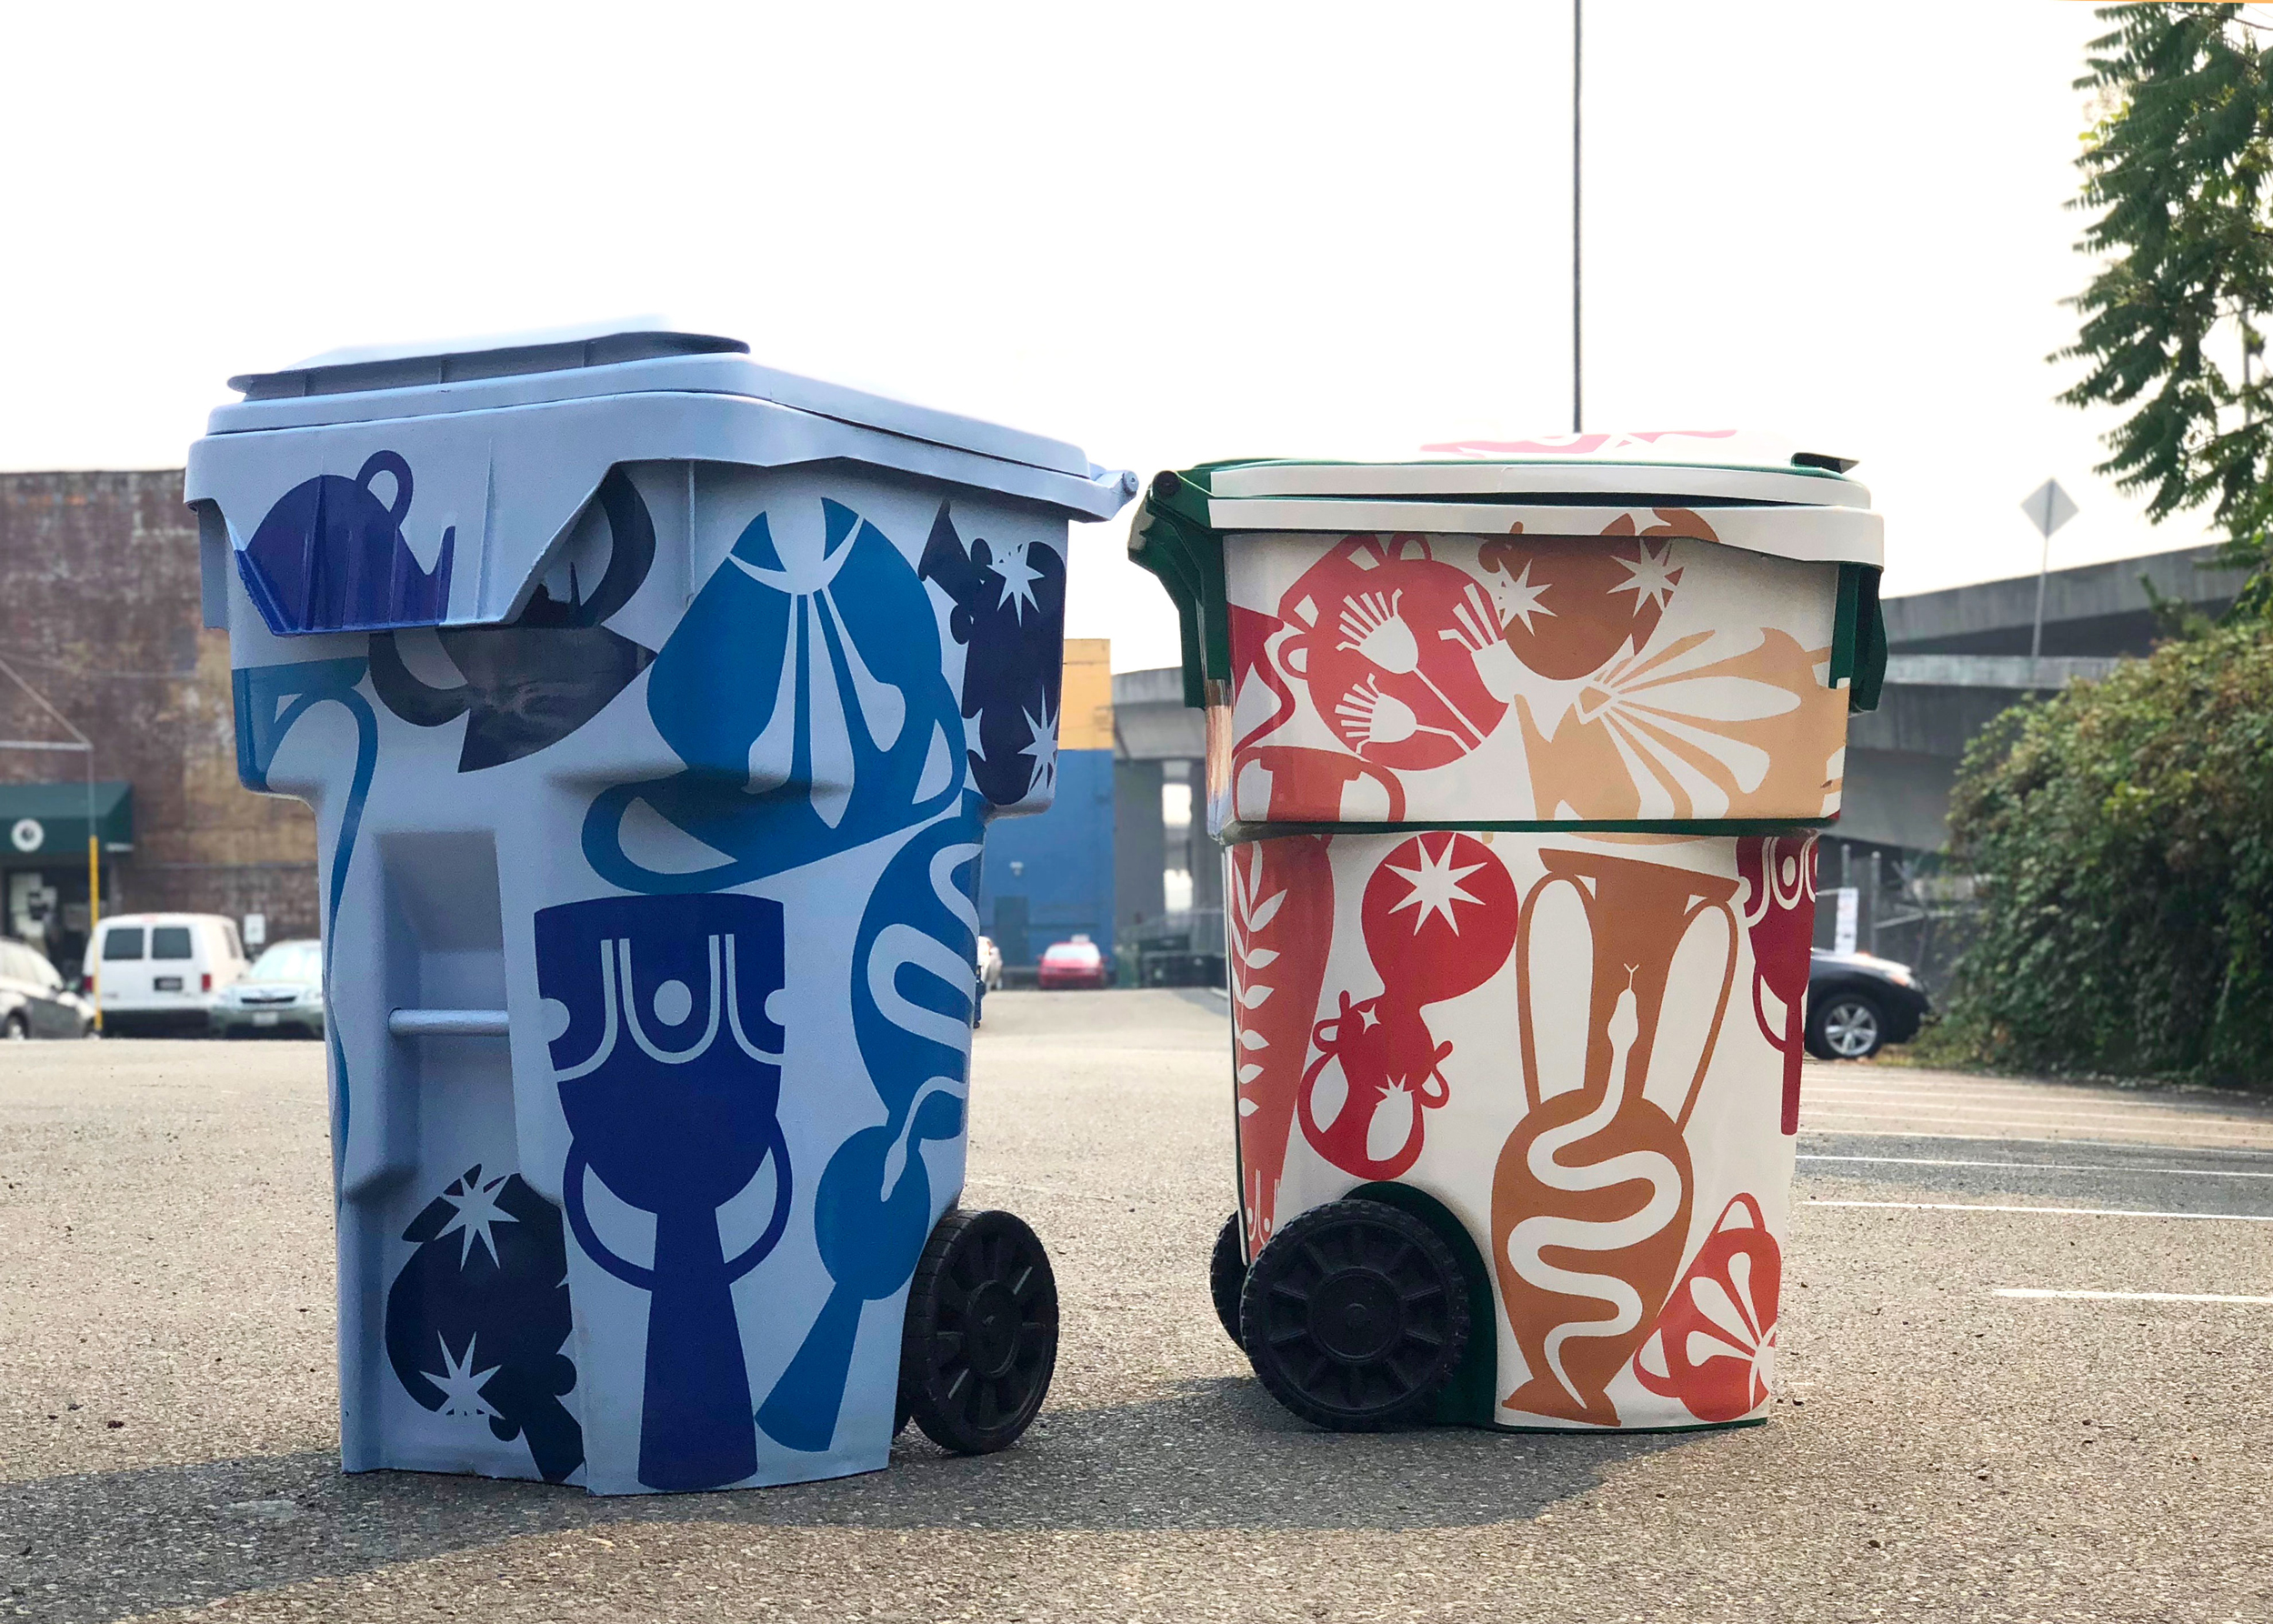 Seattle Public Utilities recycling and compost bins artist pilot program design, partnership with Urban Artworks.